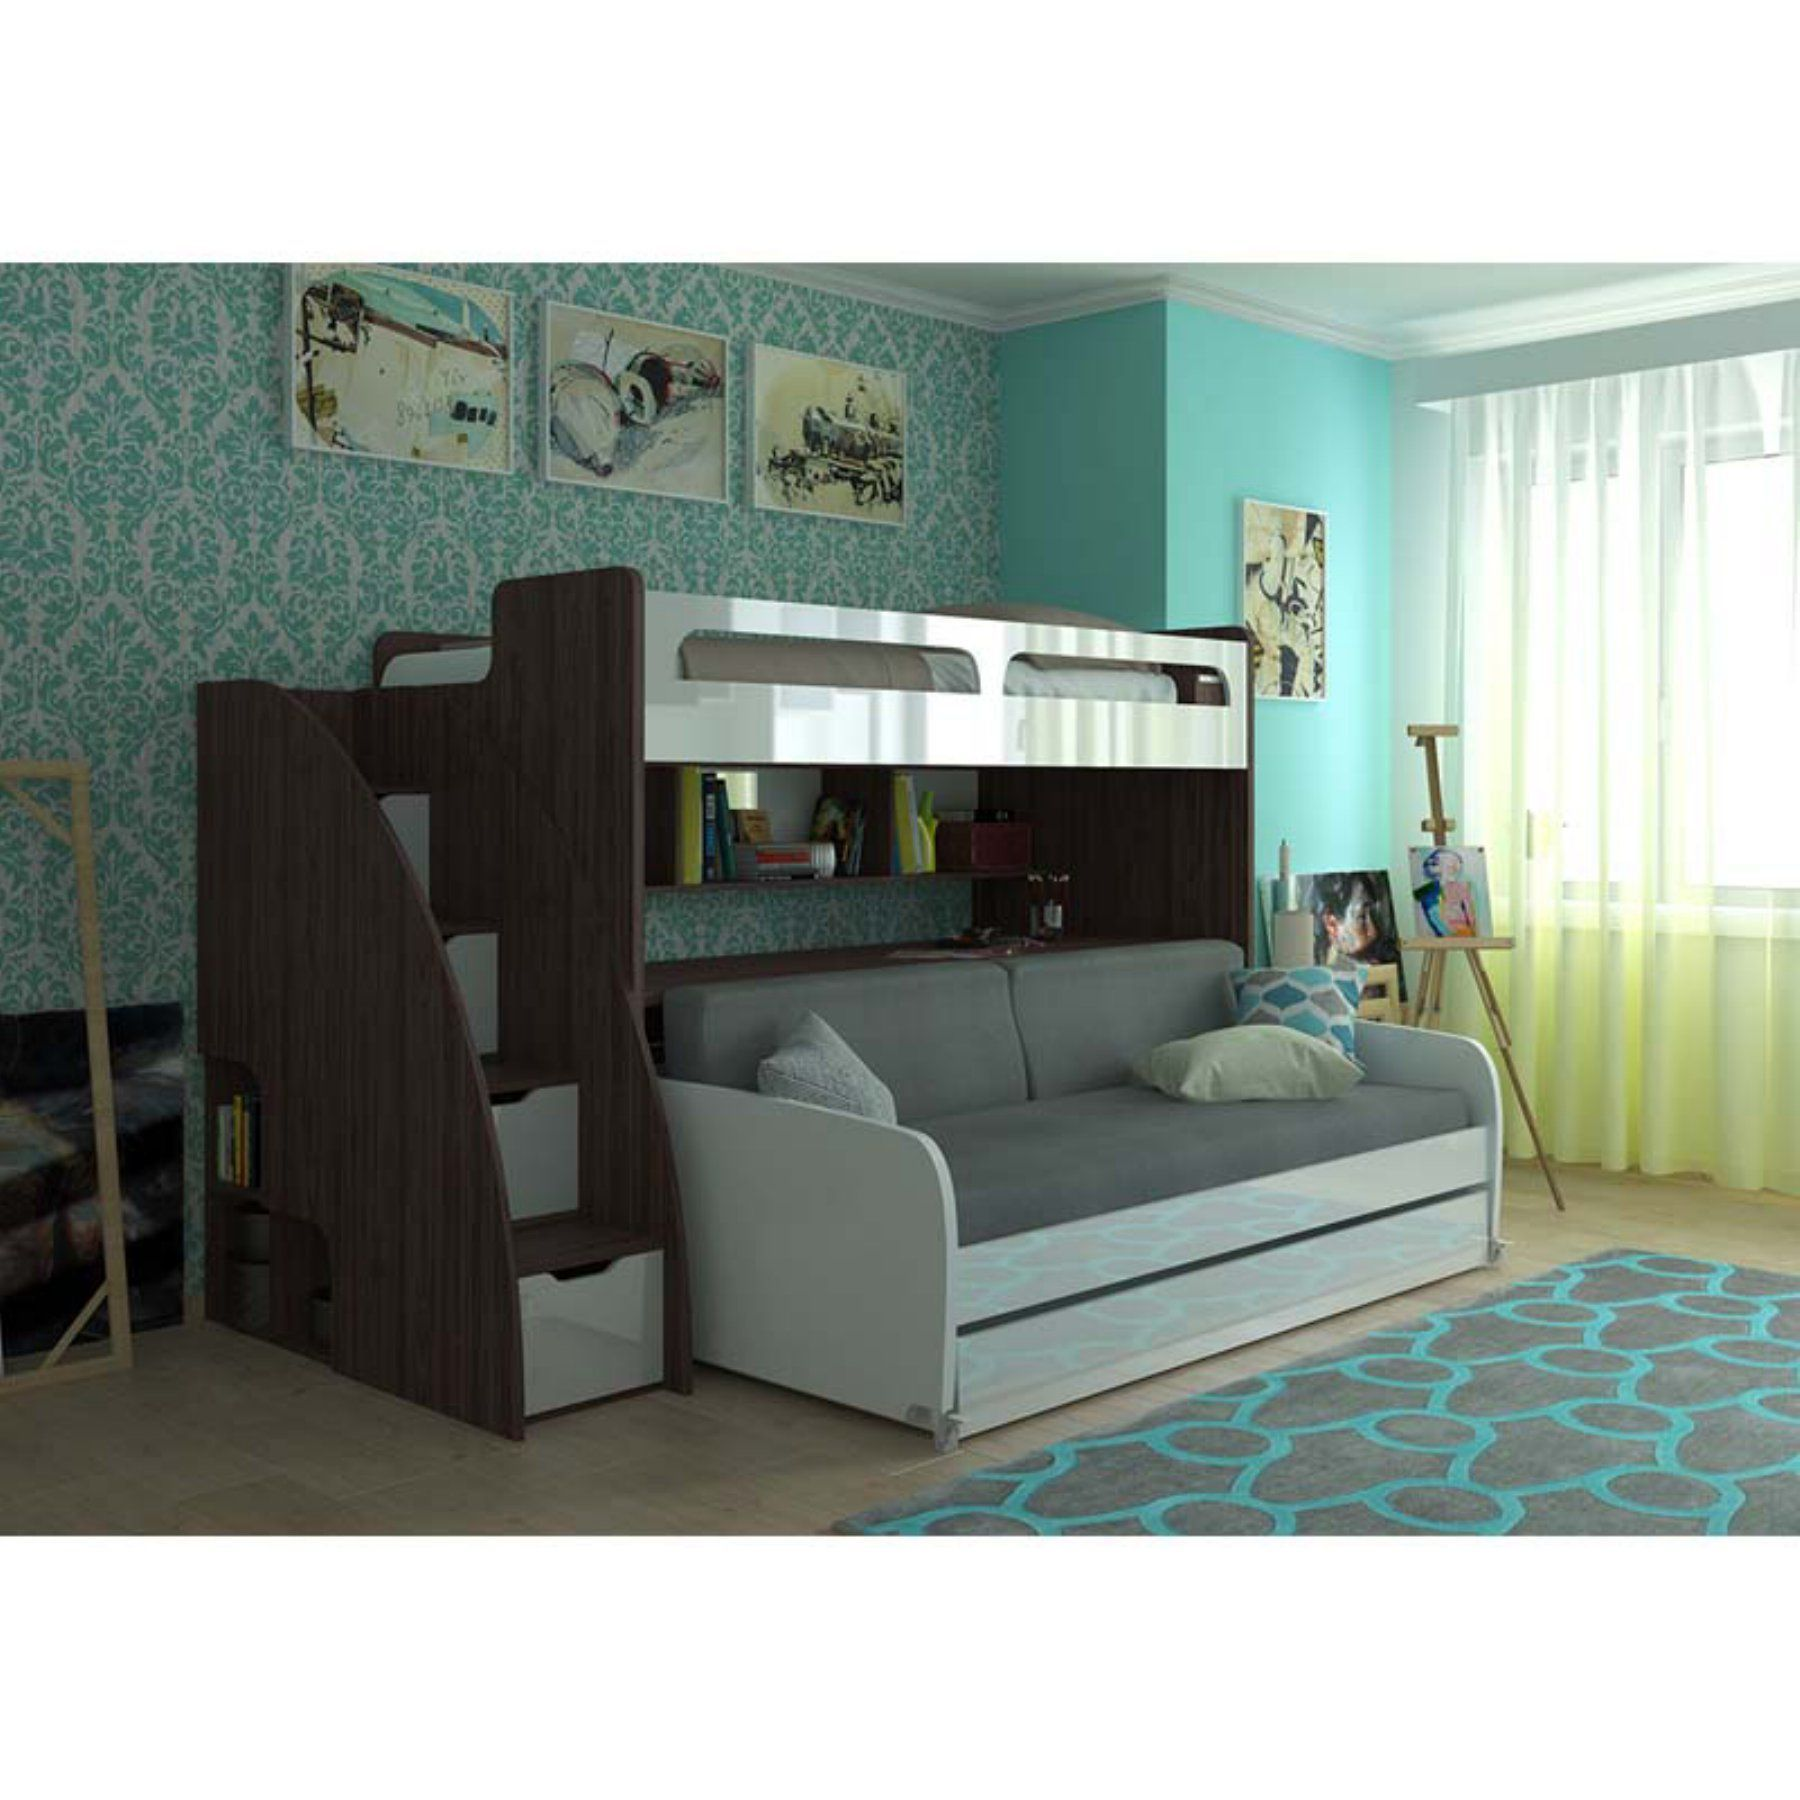 Ausziehbett Antonio Multimo Bel Mondo Grande Daybed With Loft Bed And Two Trundles